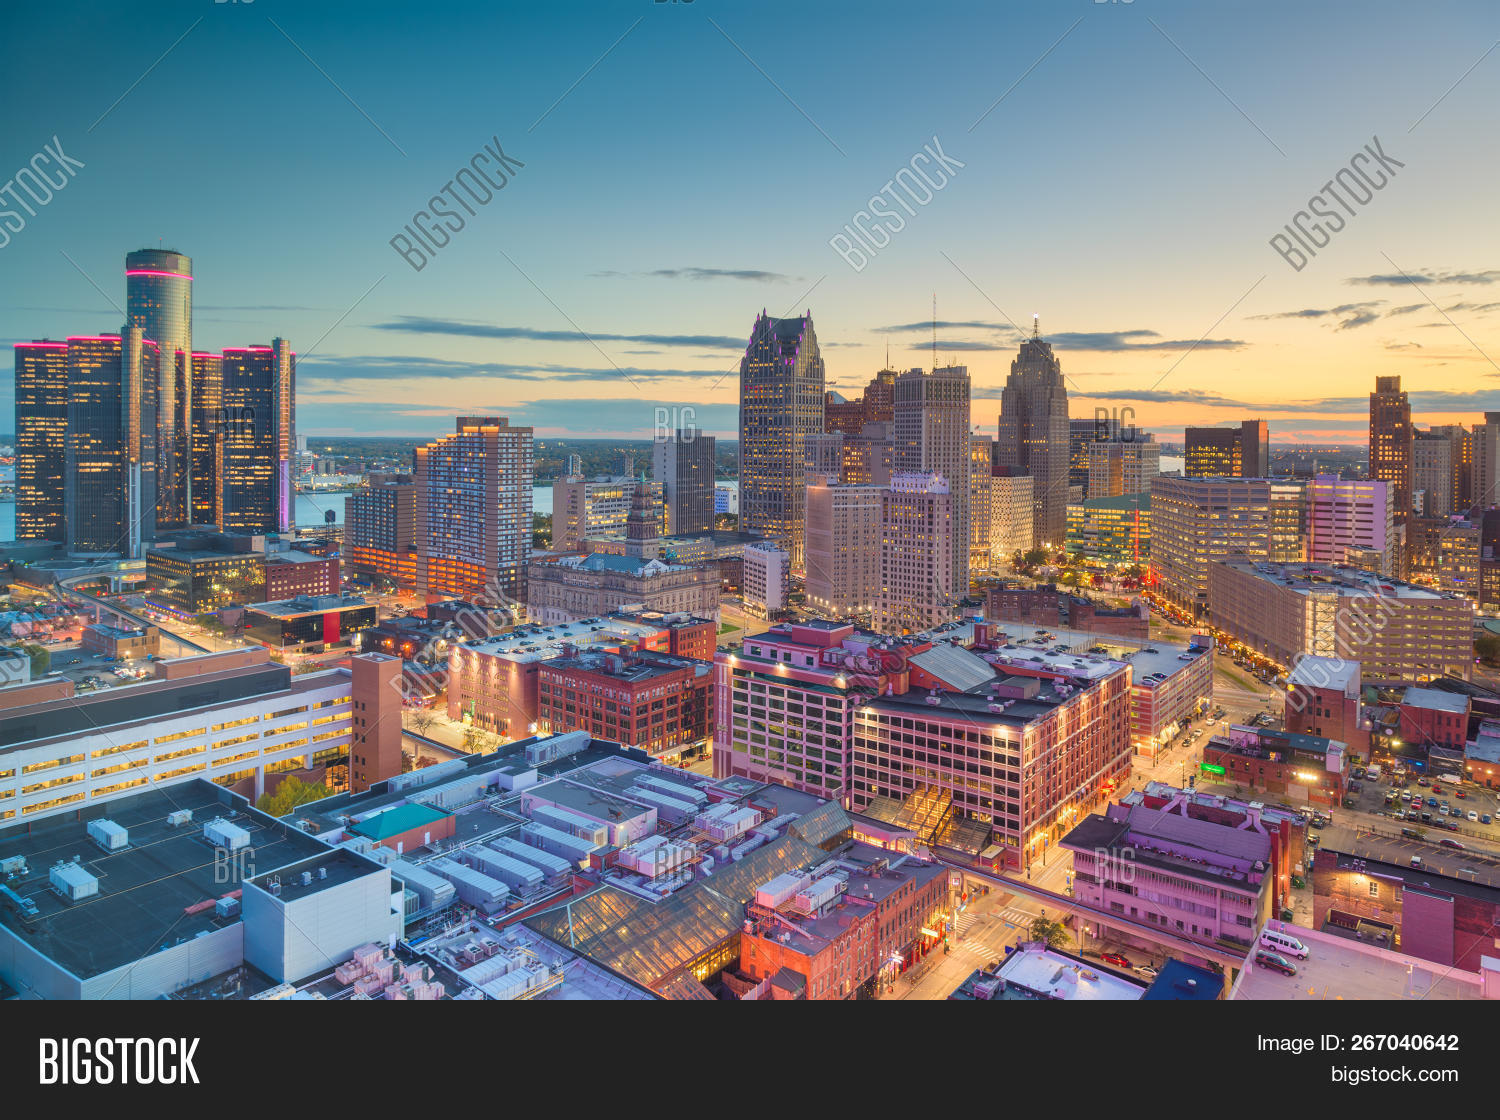 aerial,america,american,apartments,architecture,buildings,business,city,cityscape,detroit,district,downtown,dusk,evening,famous,financial,high rises,landmark,landscape,lights,location,metropolis,metropolitan,mi,michigan,midwest,modern,night,offices,place,roof,rooftop,scene,scenery,scenic,skyline,skyscrapers,sunset,tourism,town,travel,twilight,urban,usa,view,wayne county